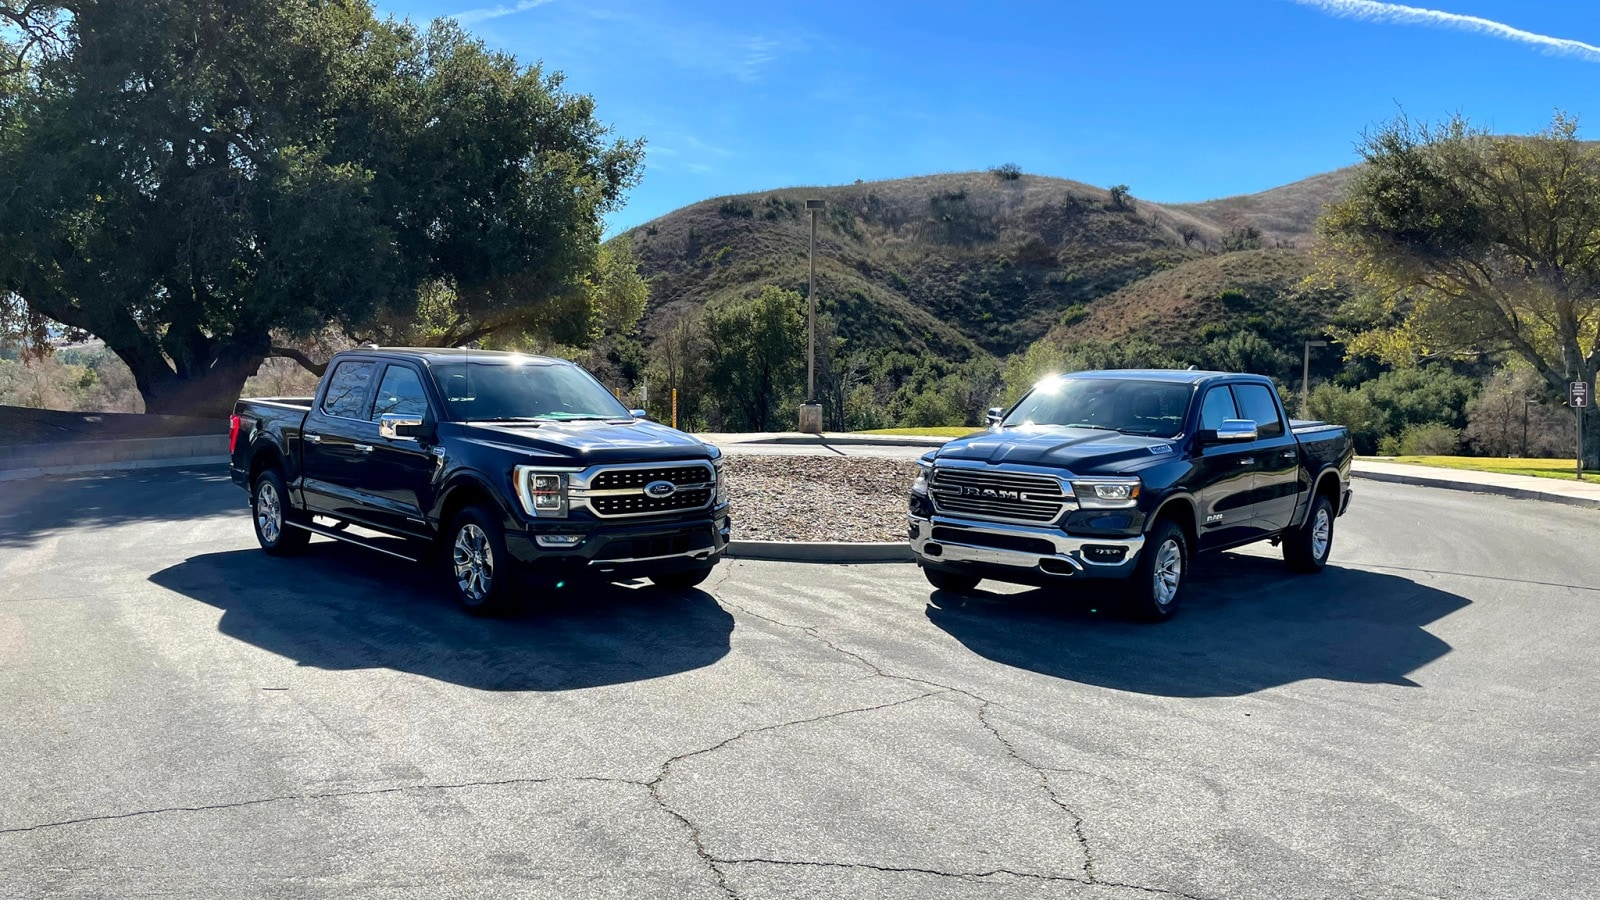 ⭐ compare all specifications and configurations of the 2021 ram 1500 classic, choose special features and options, and check out specs and trims on carbuzz.com Ford F 150 Vs Ram 1500 Big Truck Throwdown Edmunds